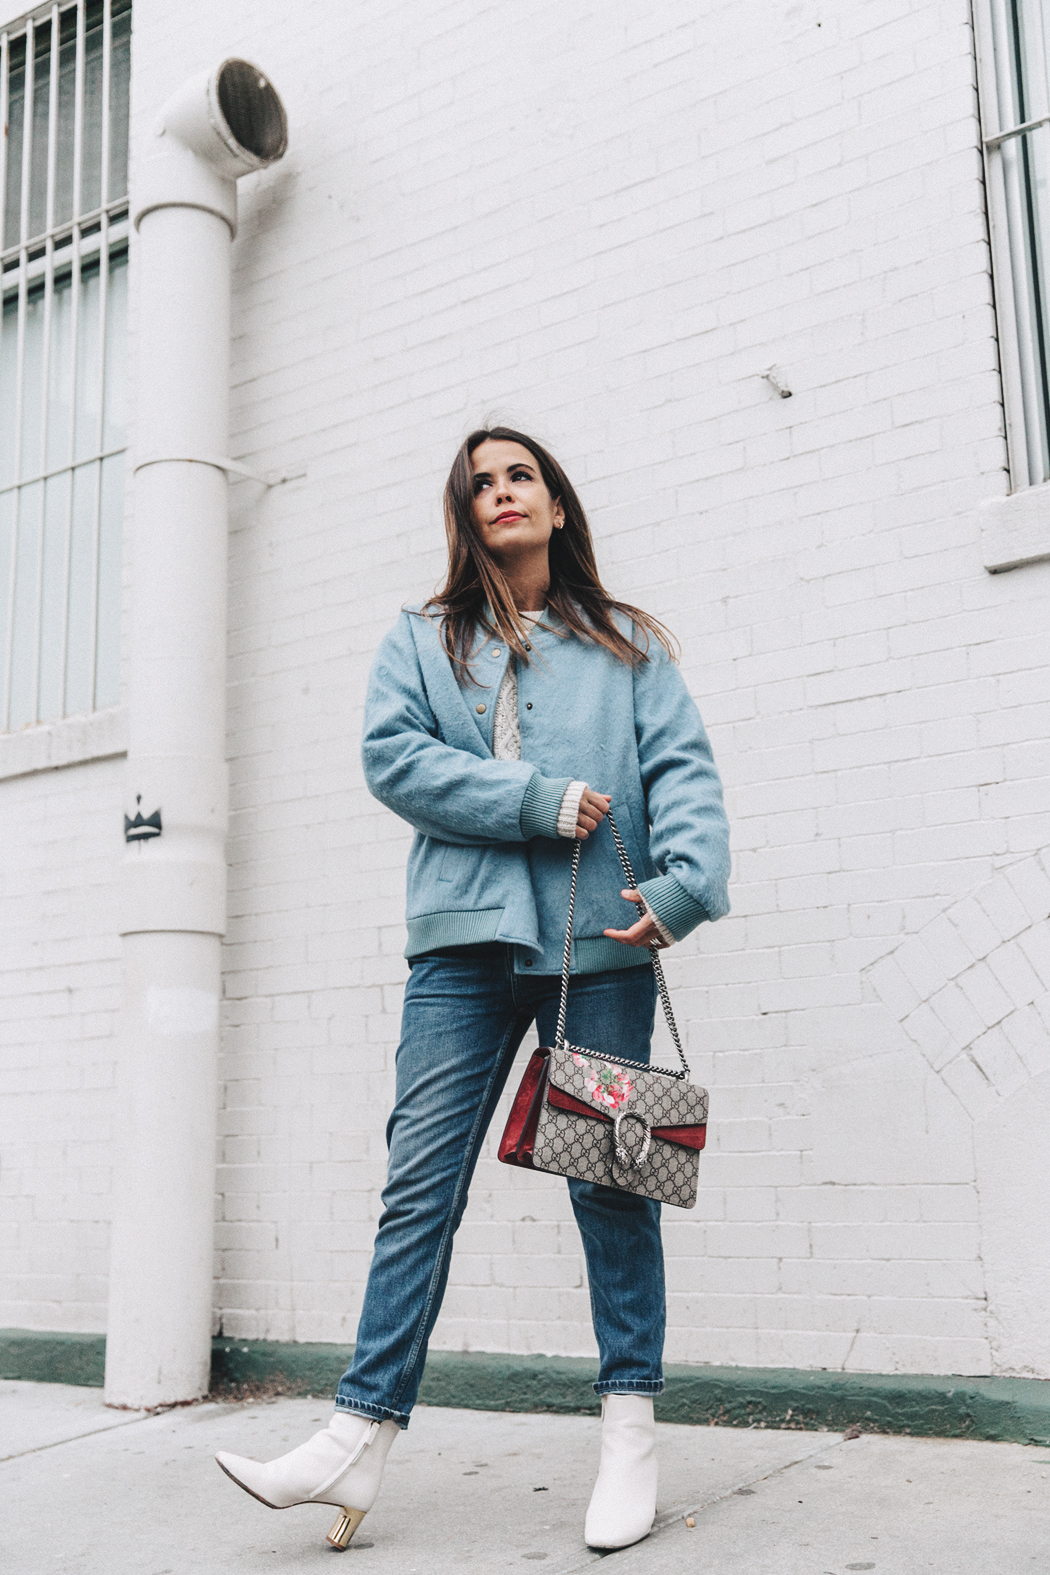 Blue_Bomber-Ganni-Topshop_Jeans-White_Boots-Gucci_Bag-Outfit-NYFW-New_York-Street_Style-15